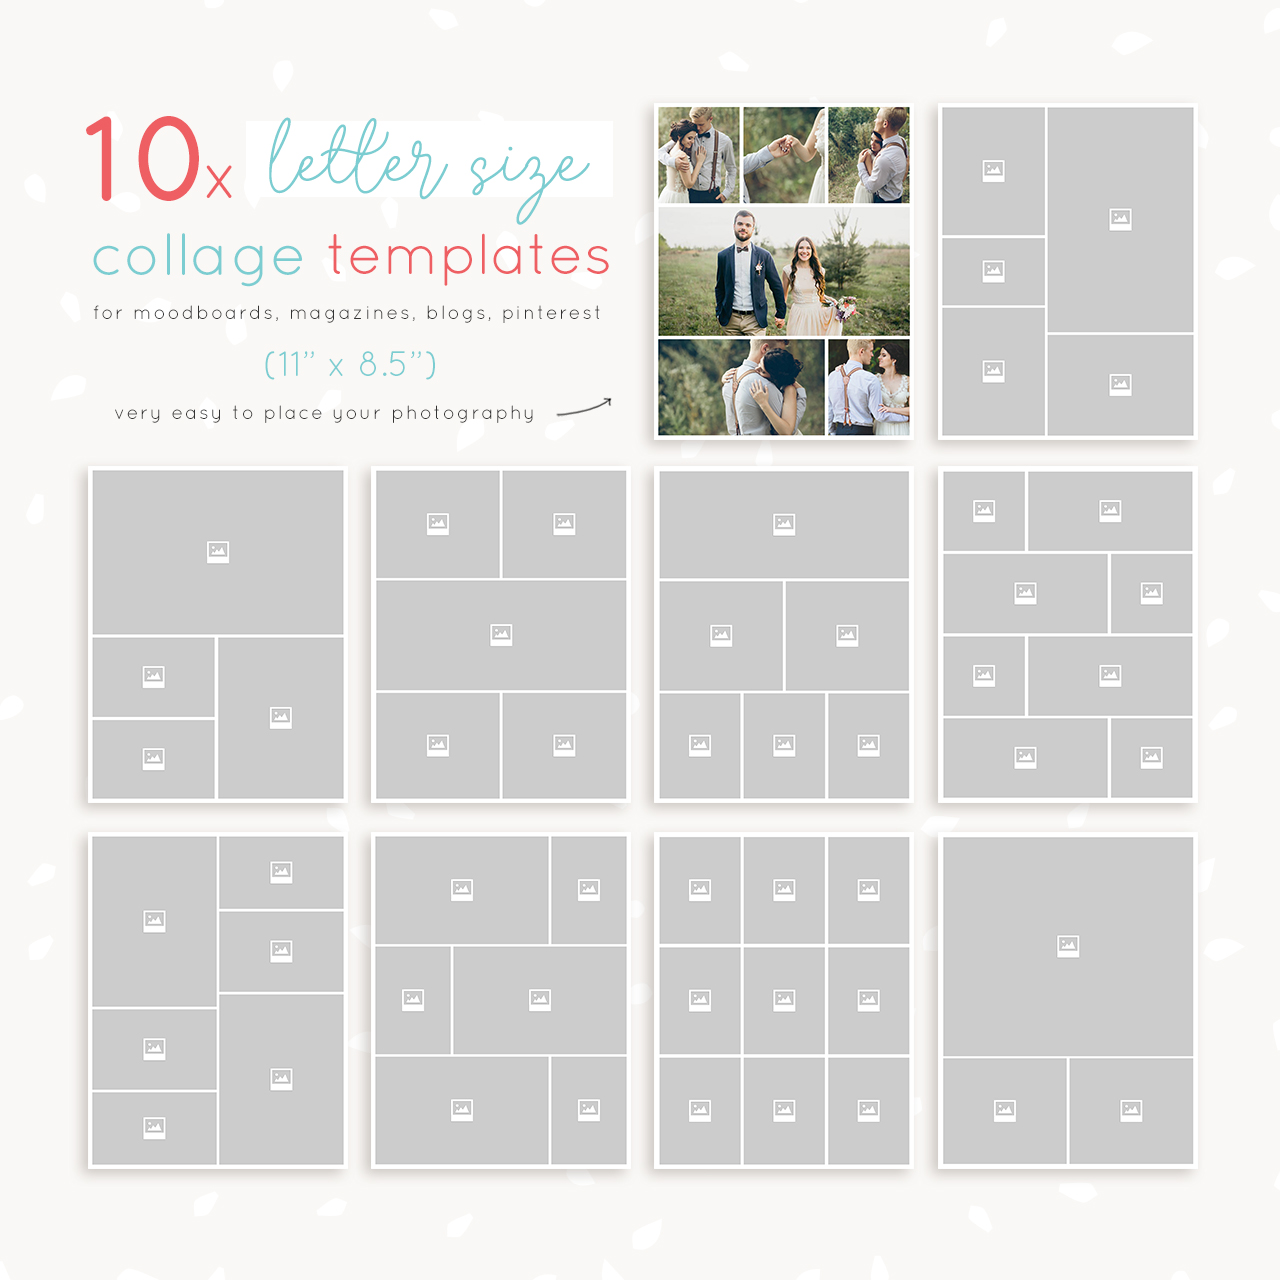 Po Collage Templates | Letter Size Collage Templates Strawberry Kit